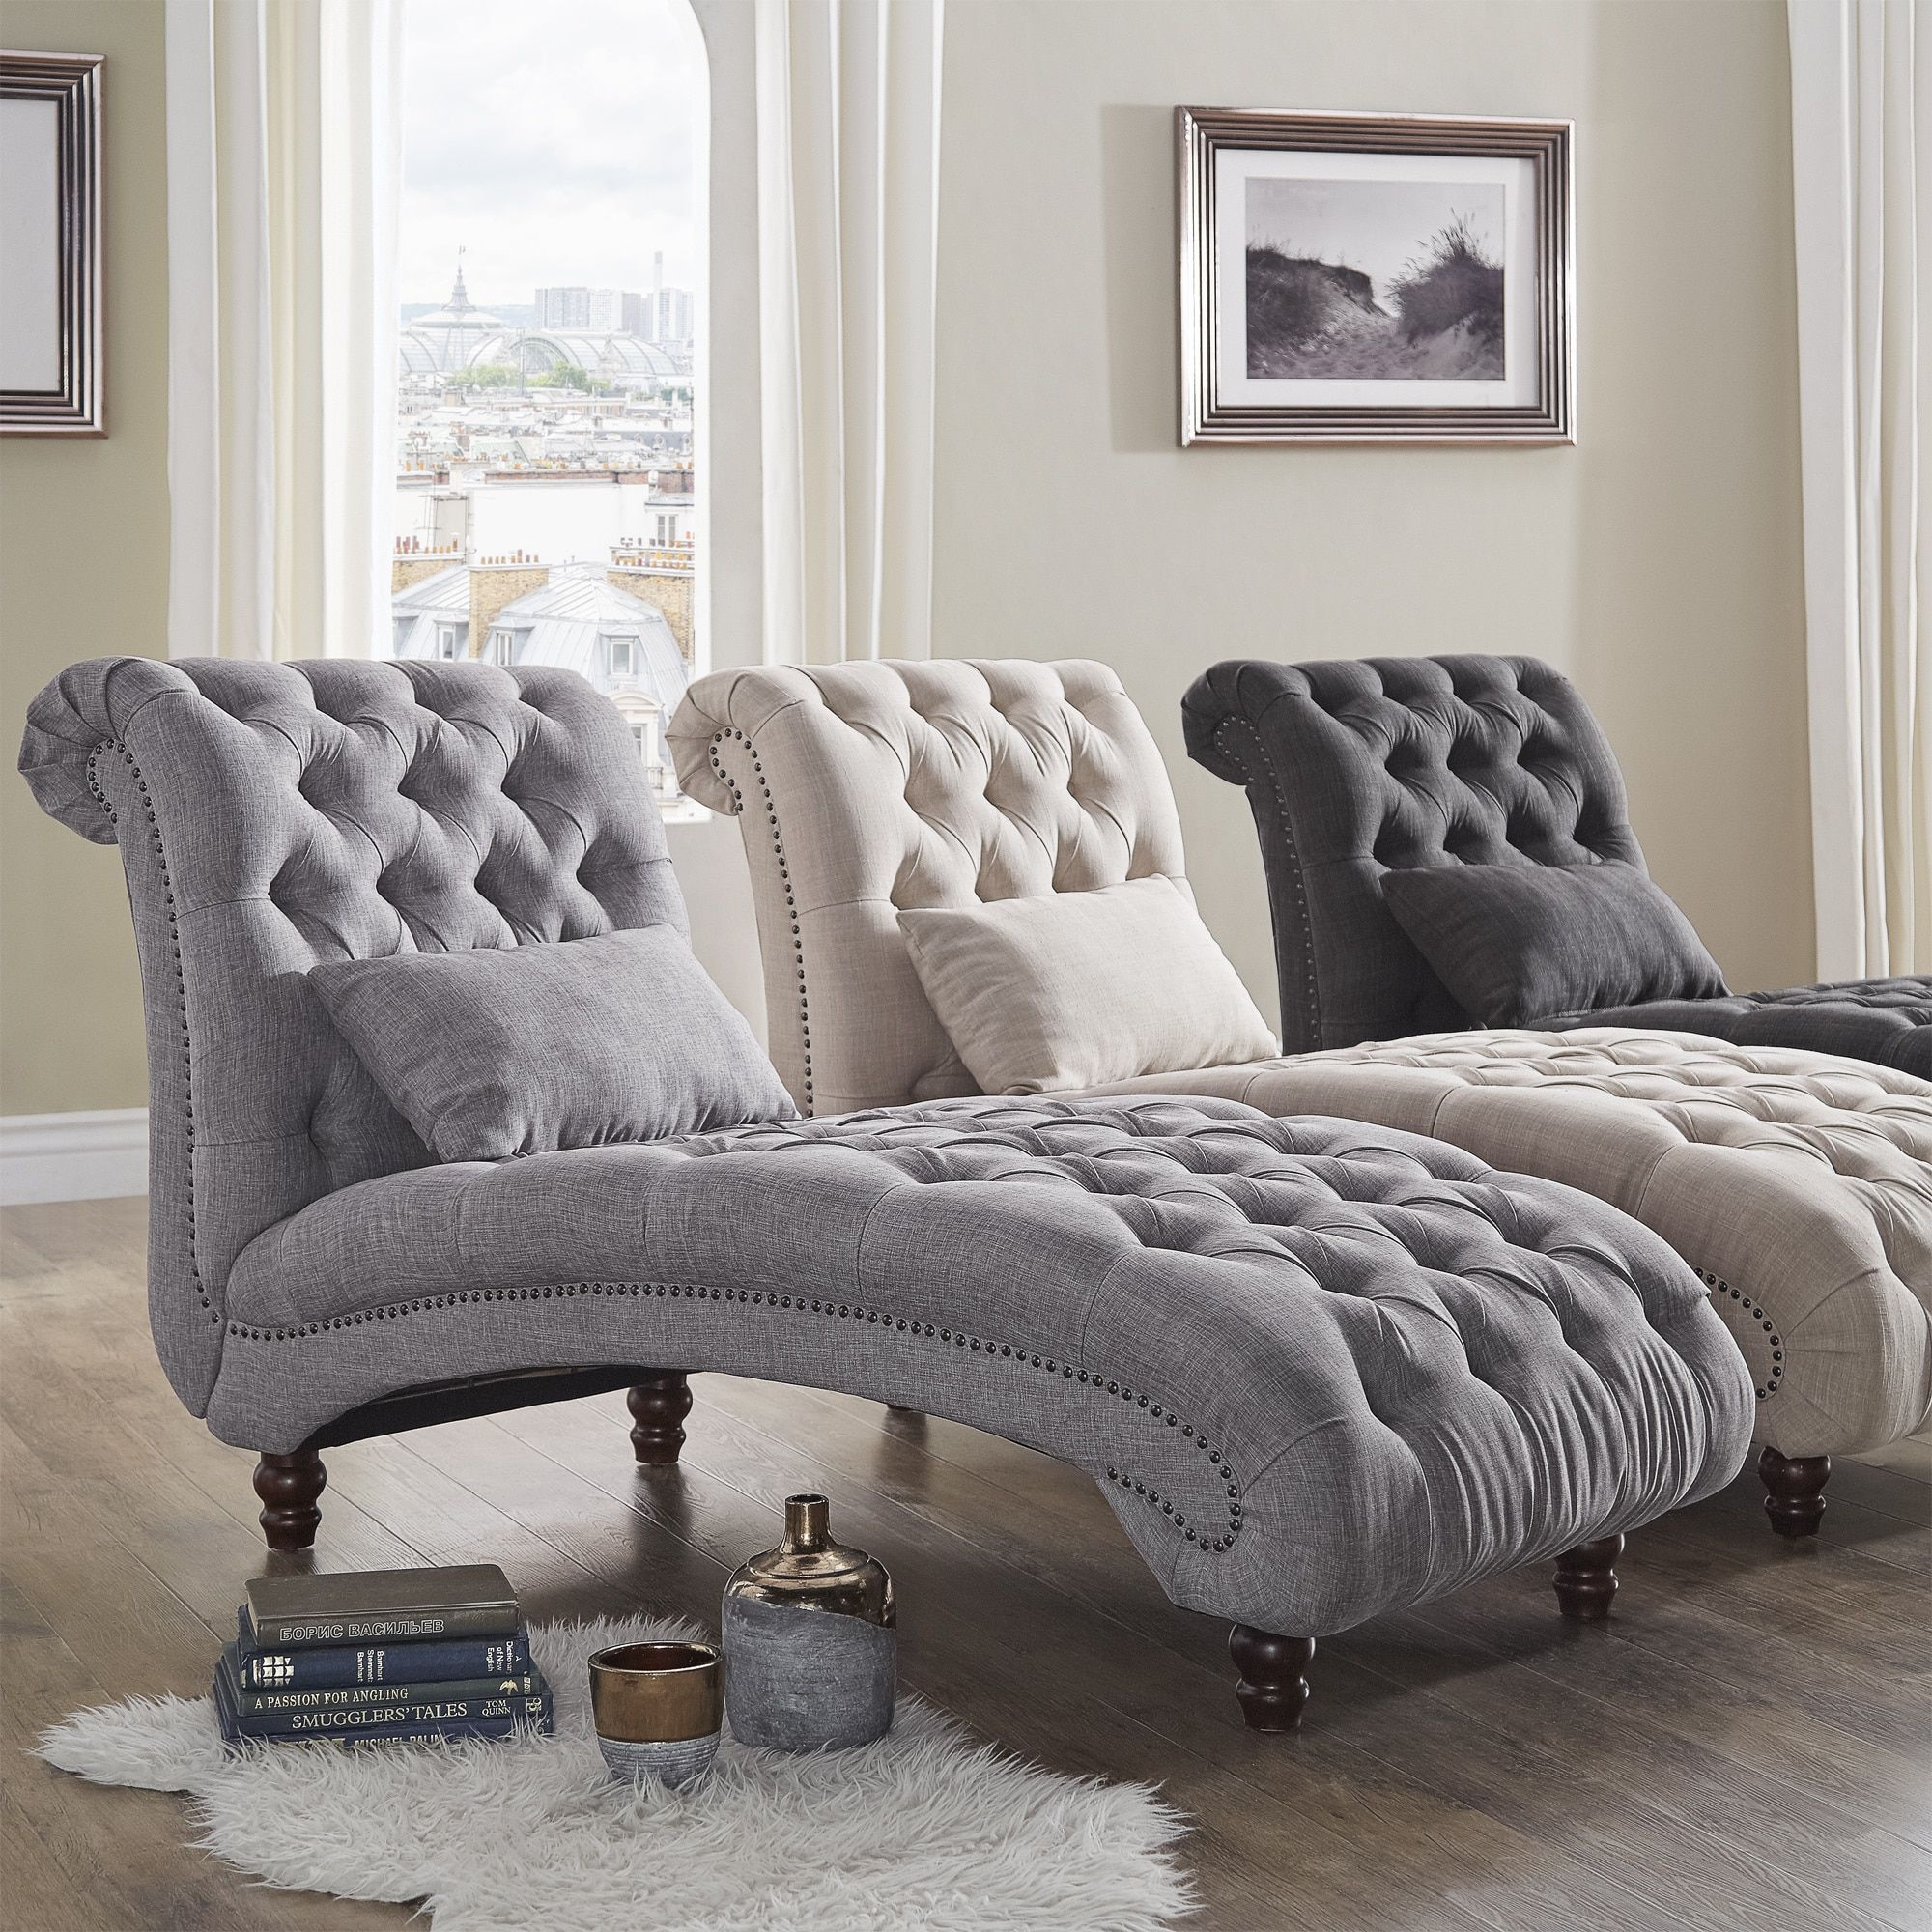 tufted oversized chaise lounge by signal hills grey linen fabric living room